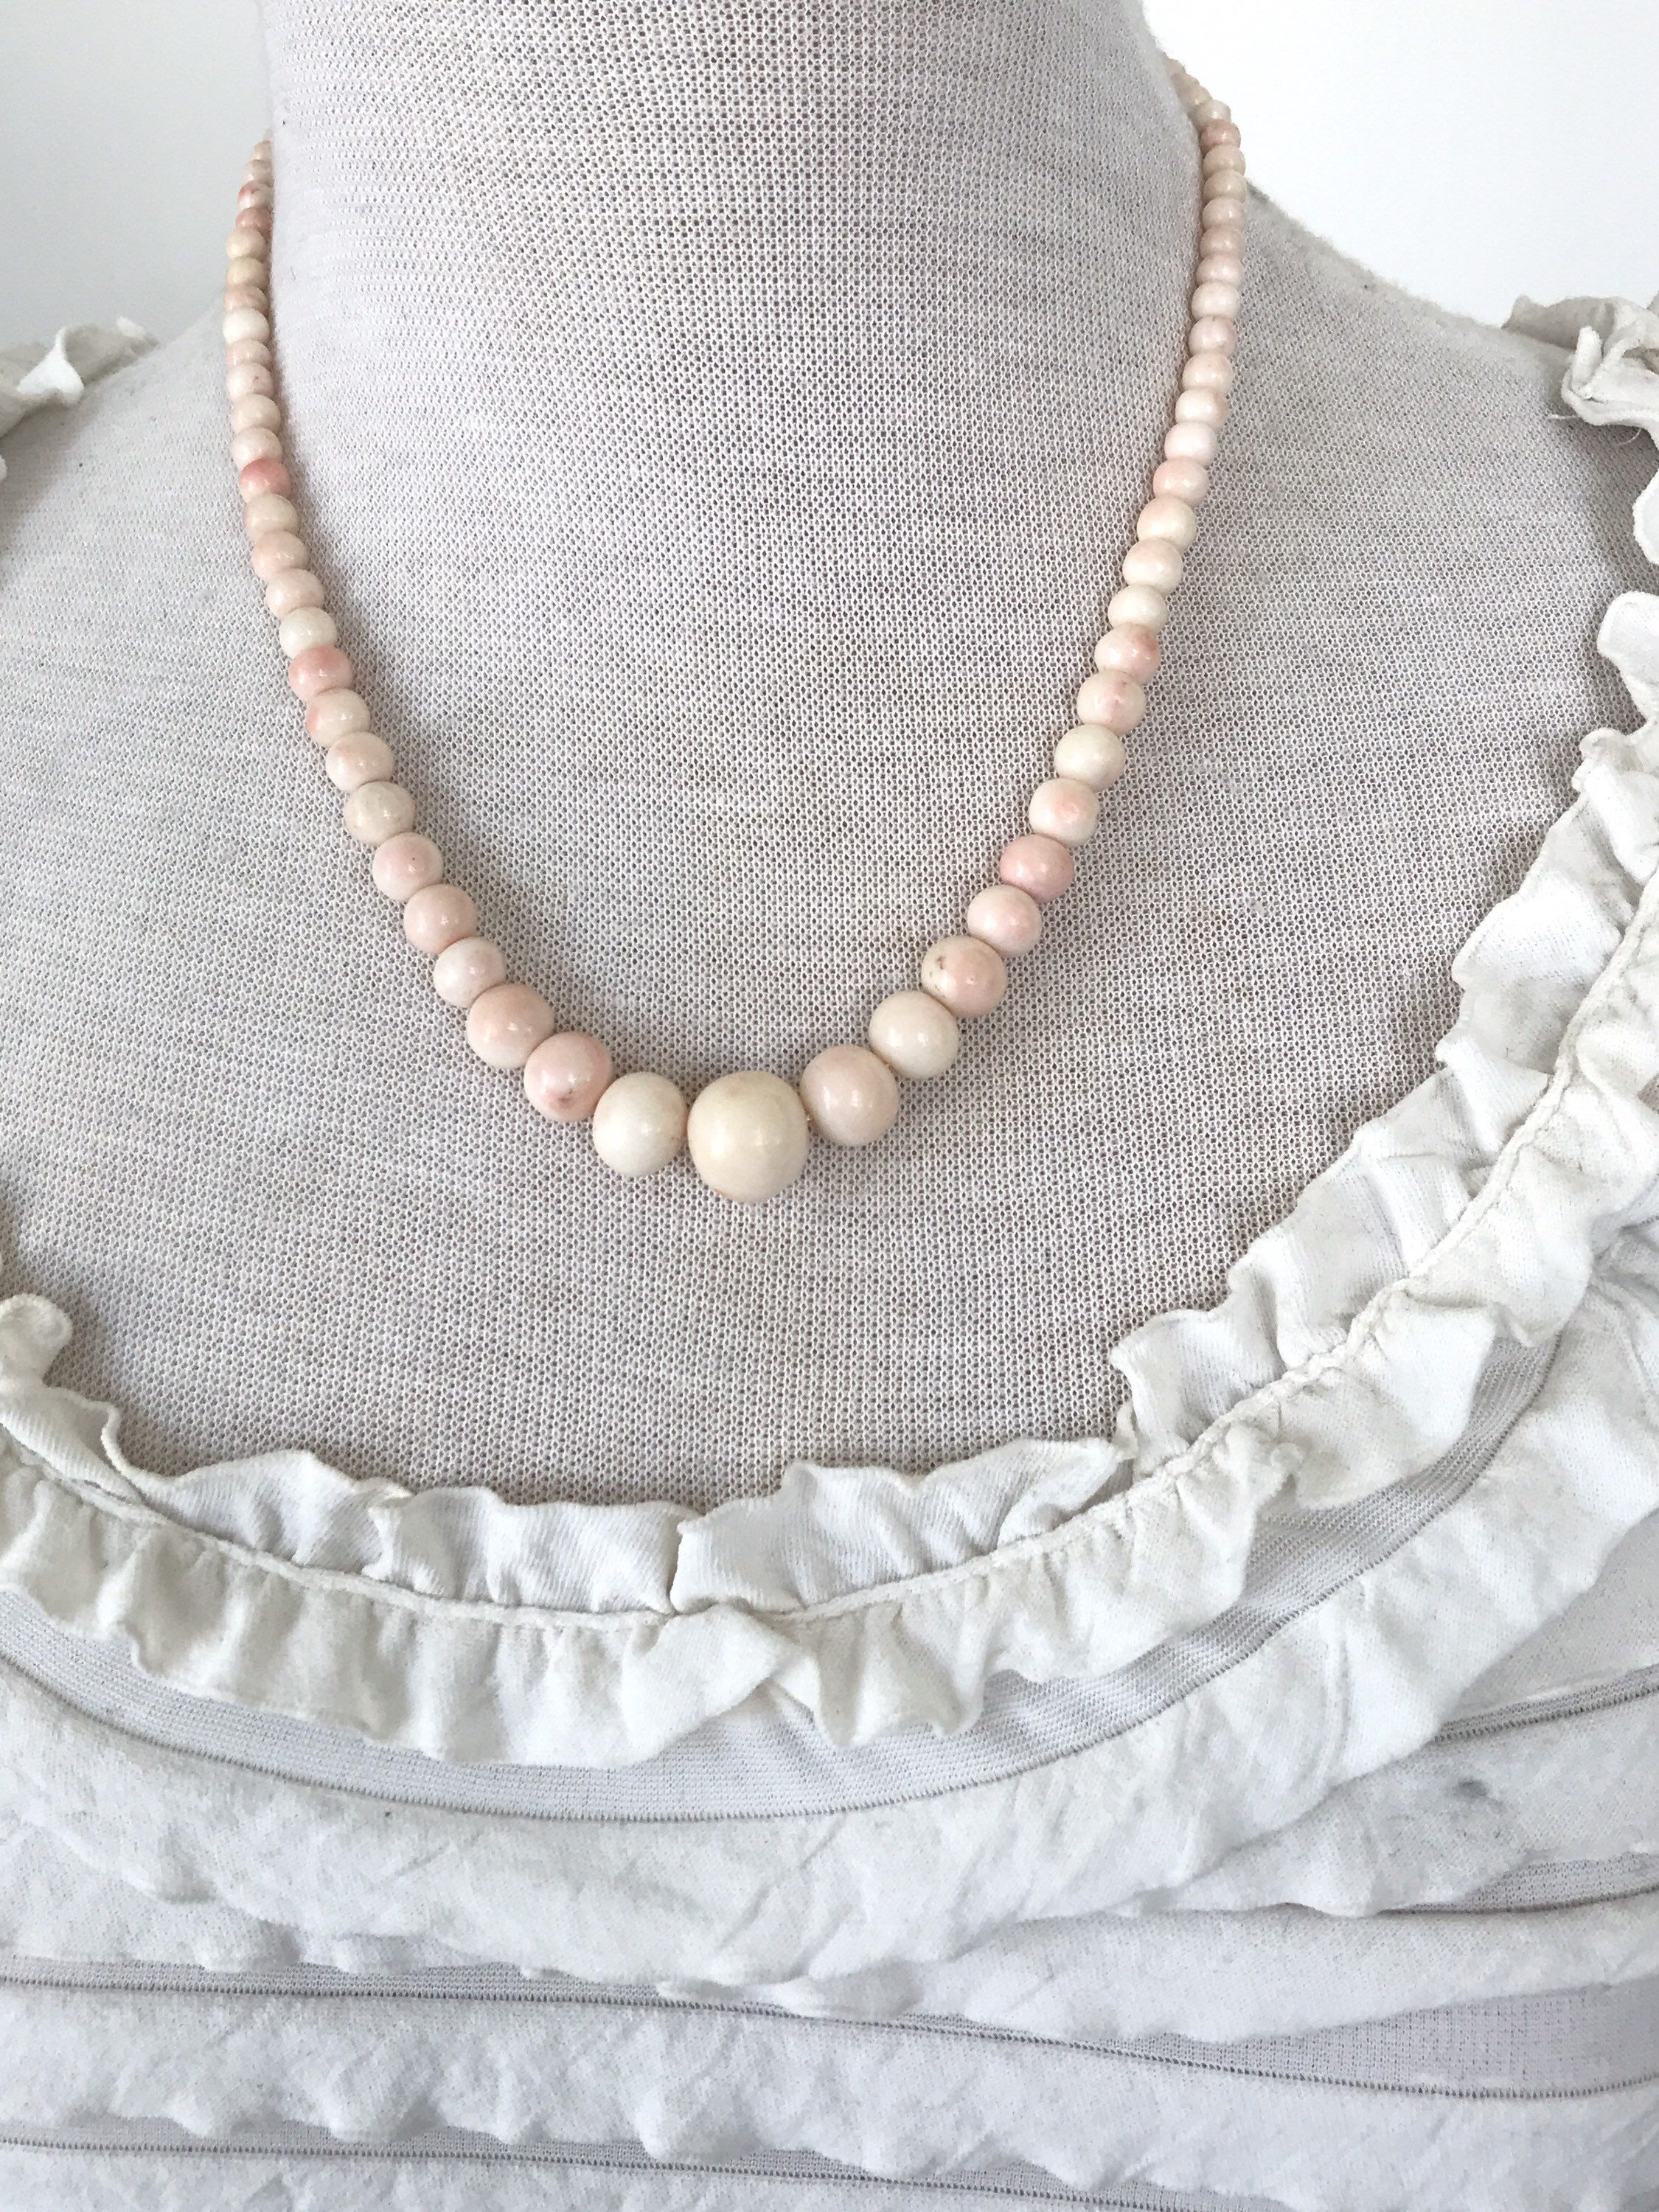 Ivory and Silver Speciality Pearls Pendant Sterling Silver Necklace. Natural Pink Speciality Pearls Necklace